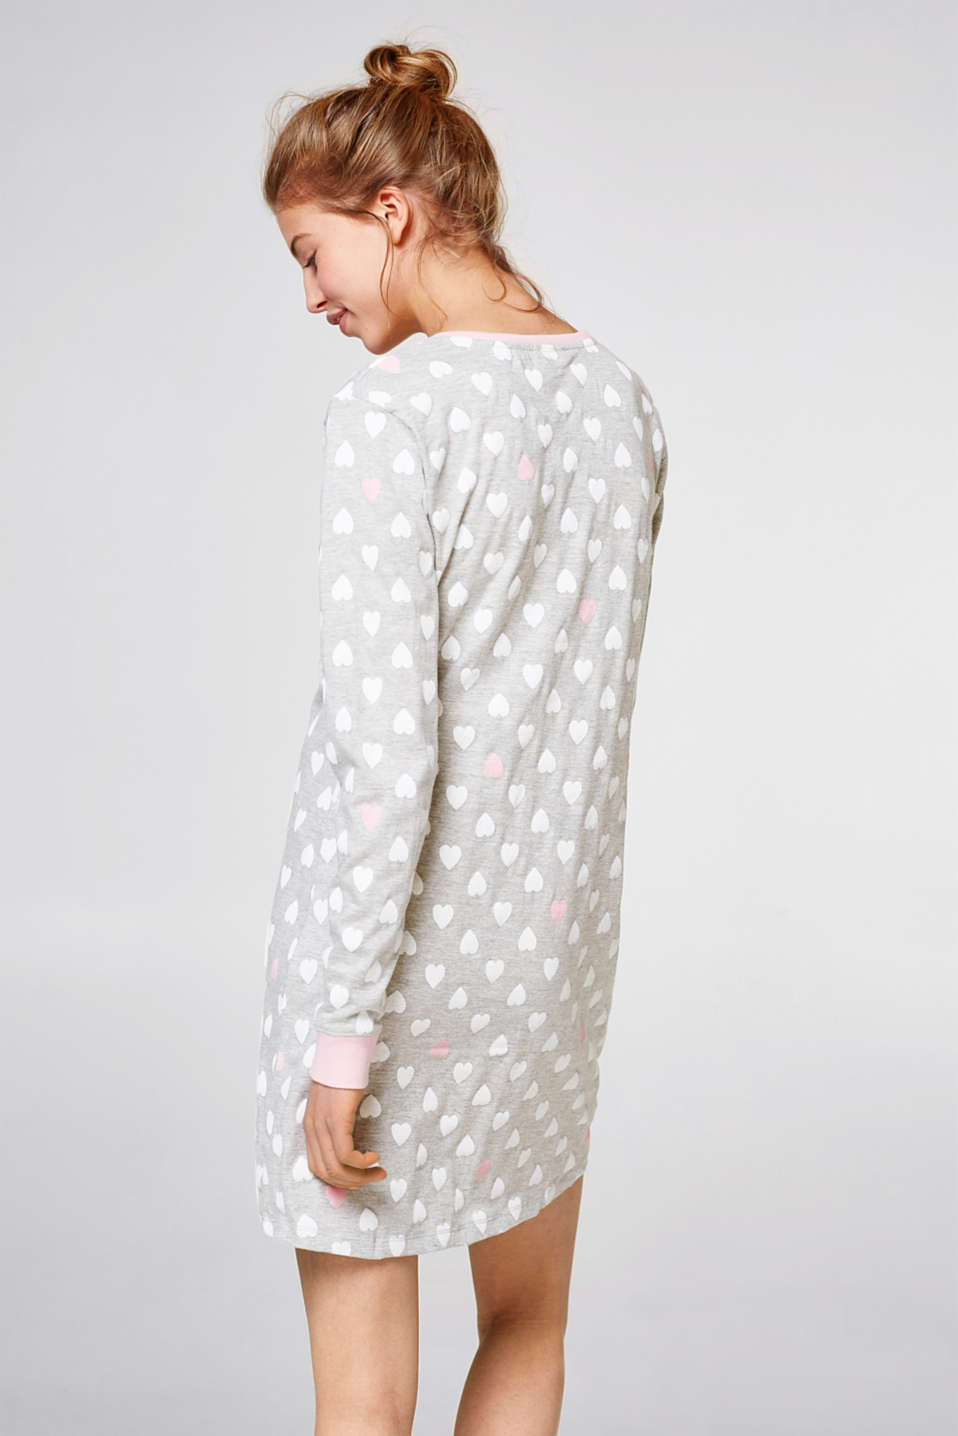 Nightshirt with all-over heart print